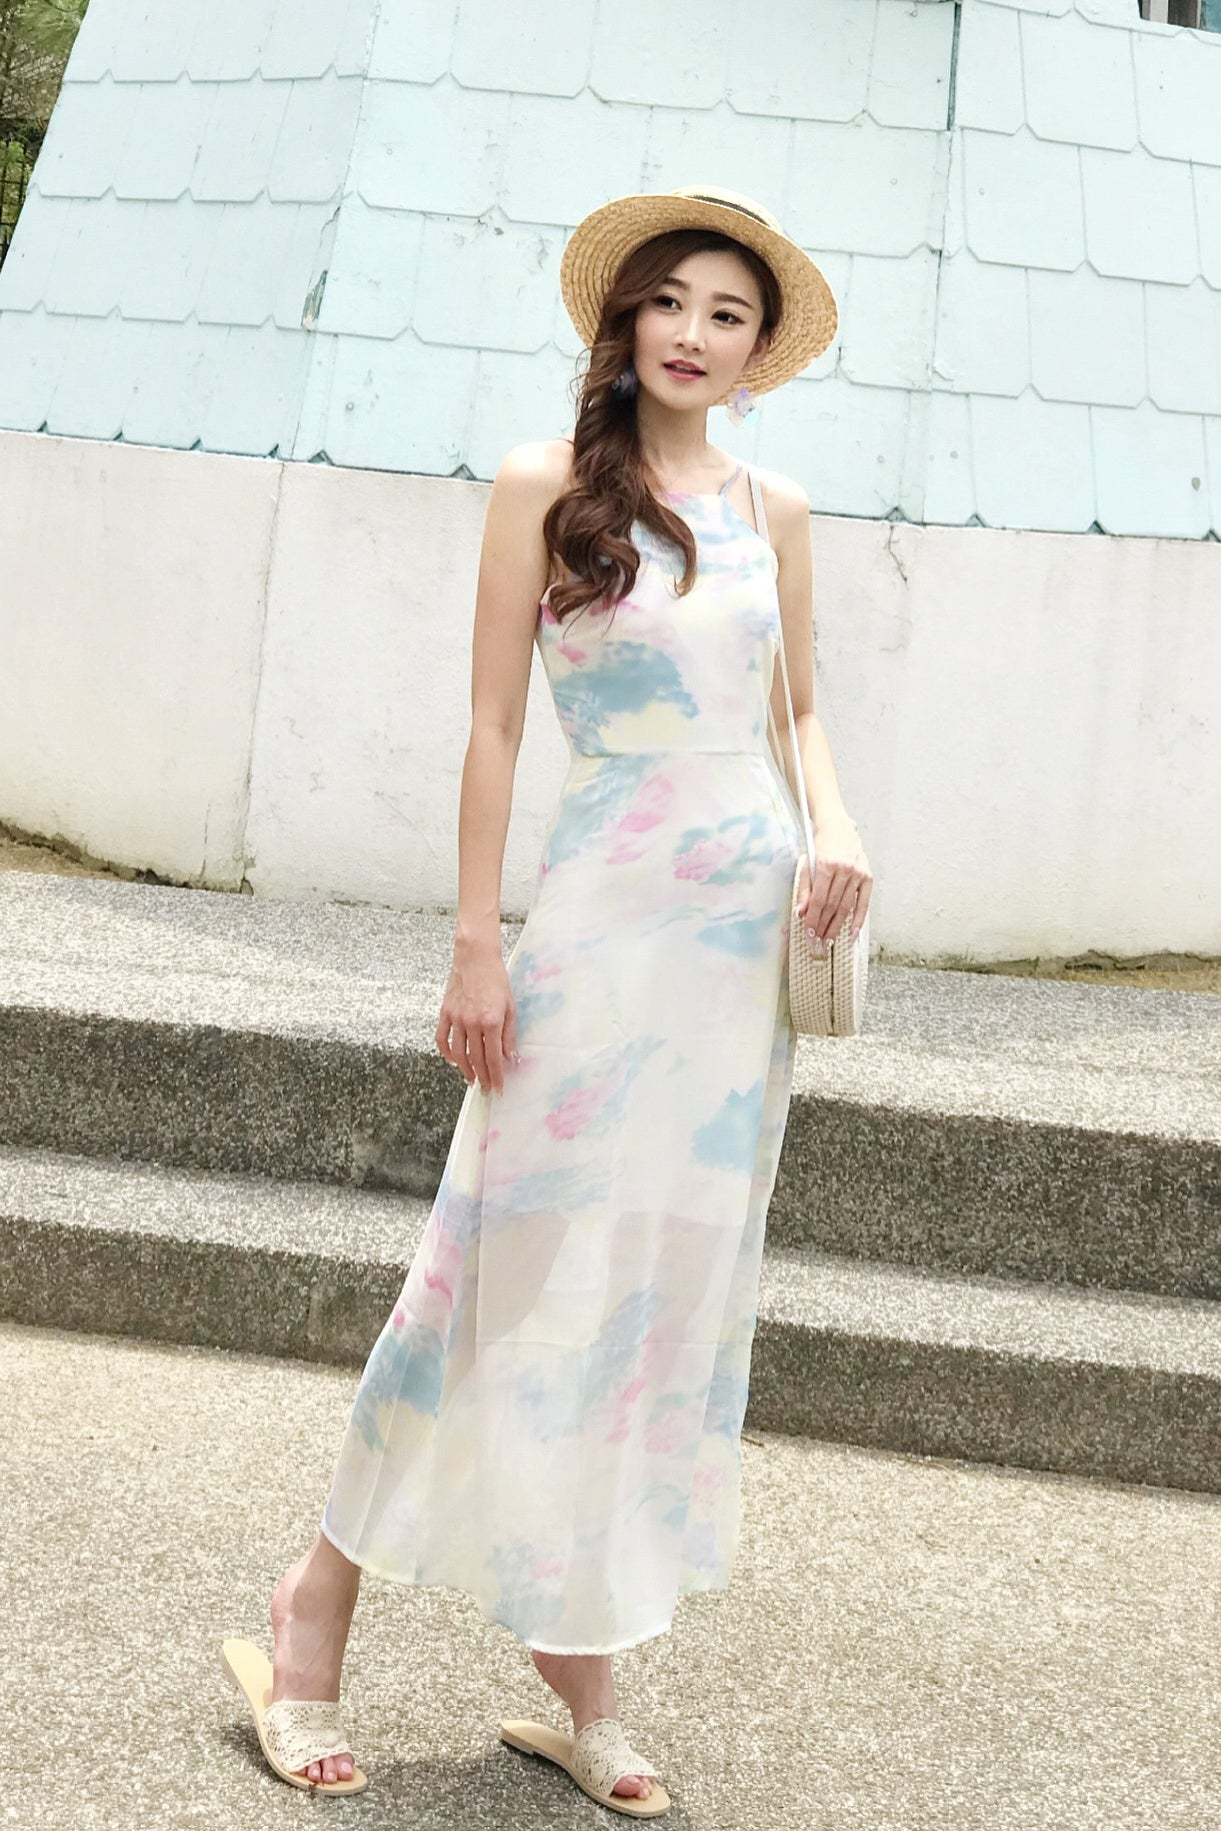 Pastel Full Length Dresses Ficts